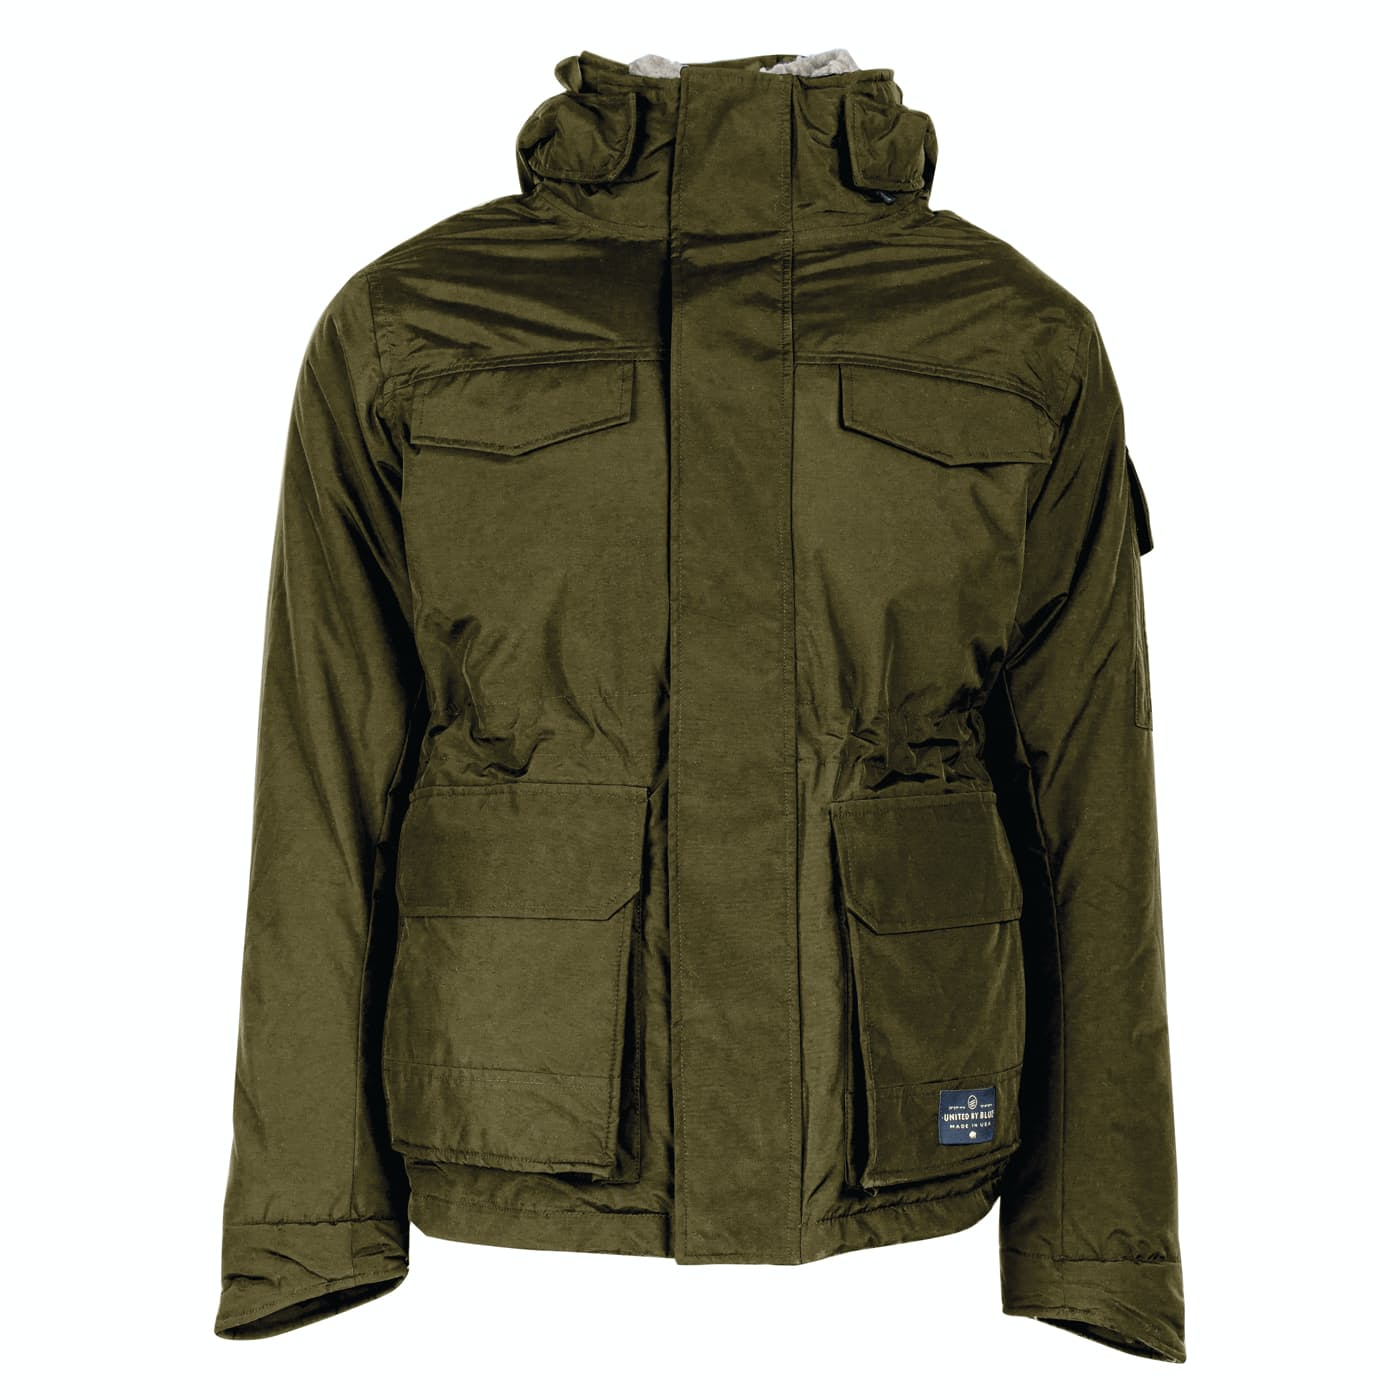 Doegvfqeas united by blue ultimate american jacket buffalo down winter jackets 0 original